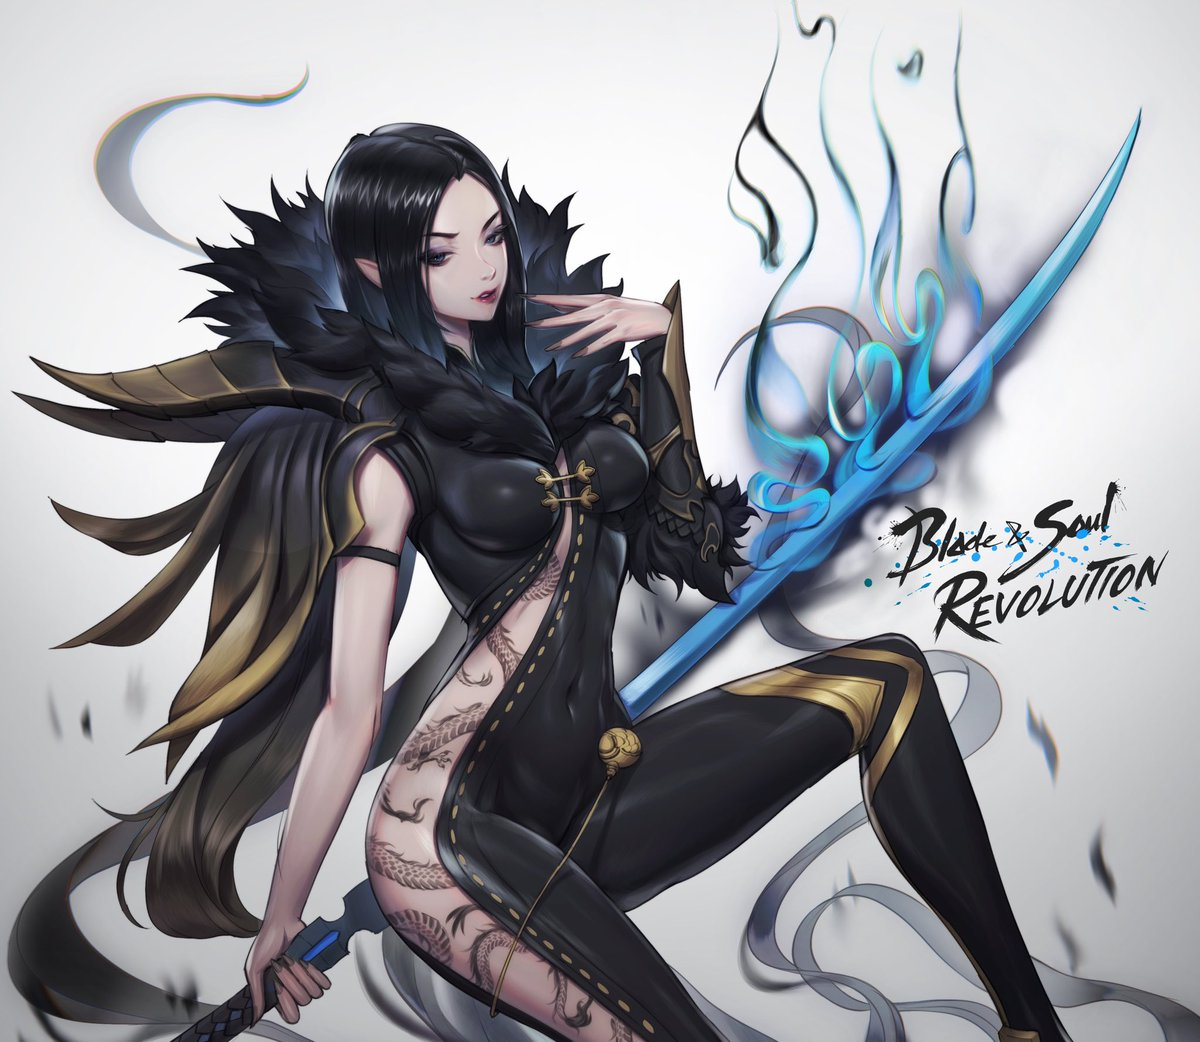 It was really fun to do a sponsorship art for them! Now there's a mobile version of the game out! Blade and Soul: revolution definitely check it out! bit.ly/3jHYQaU #revengeawaits #bnsr #netmarble #ad